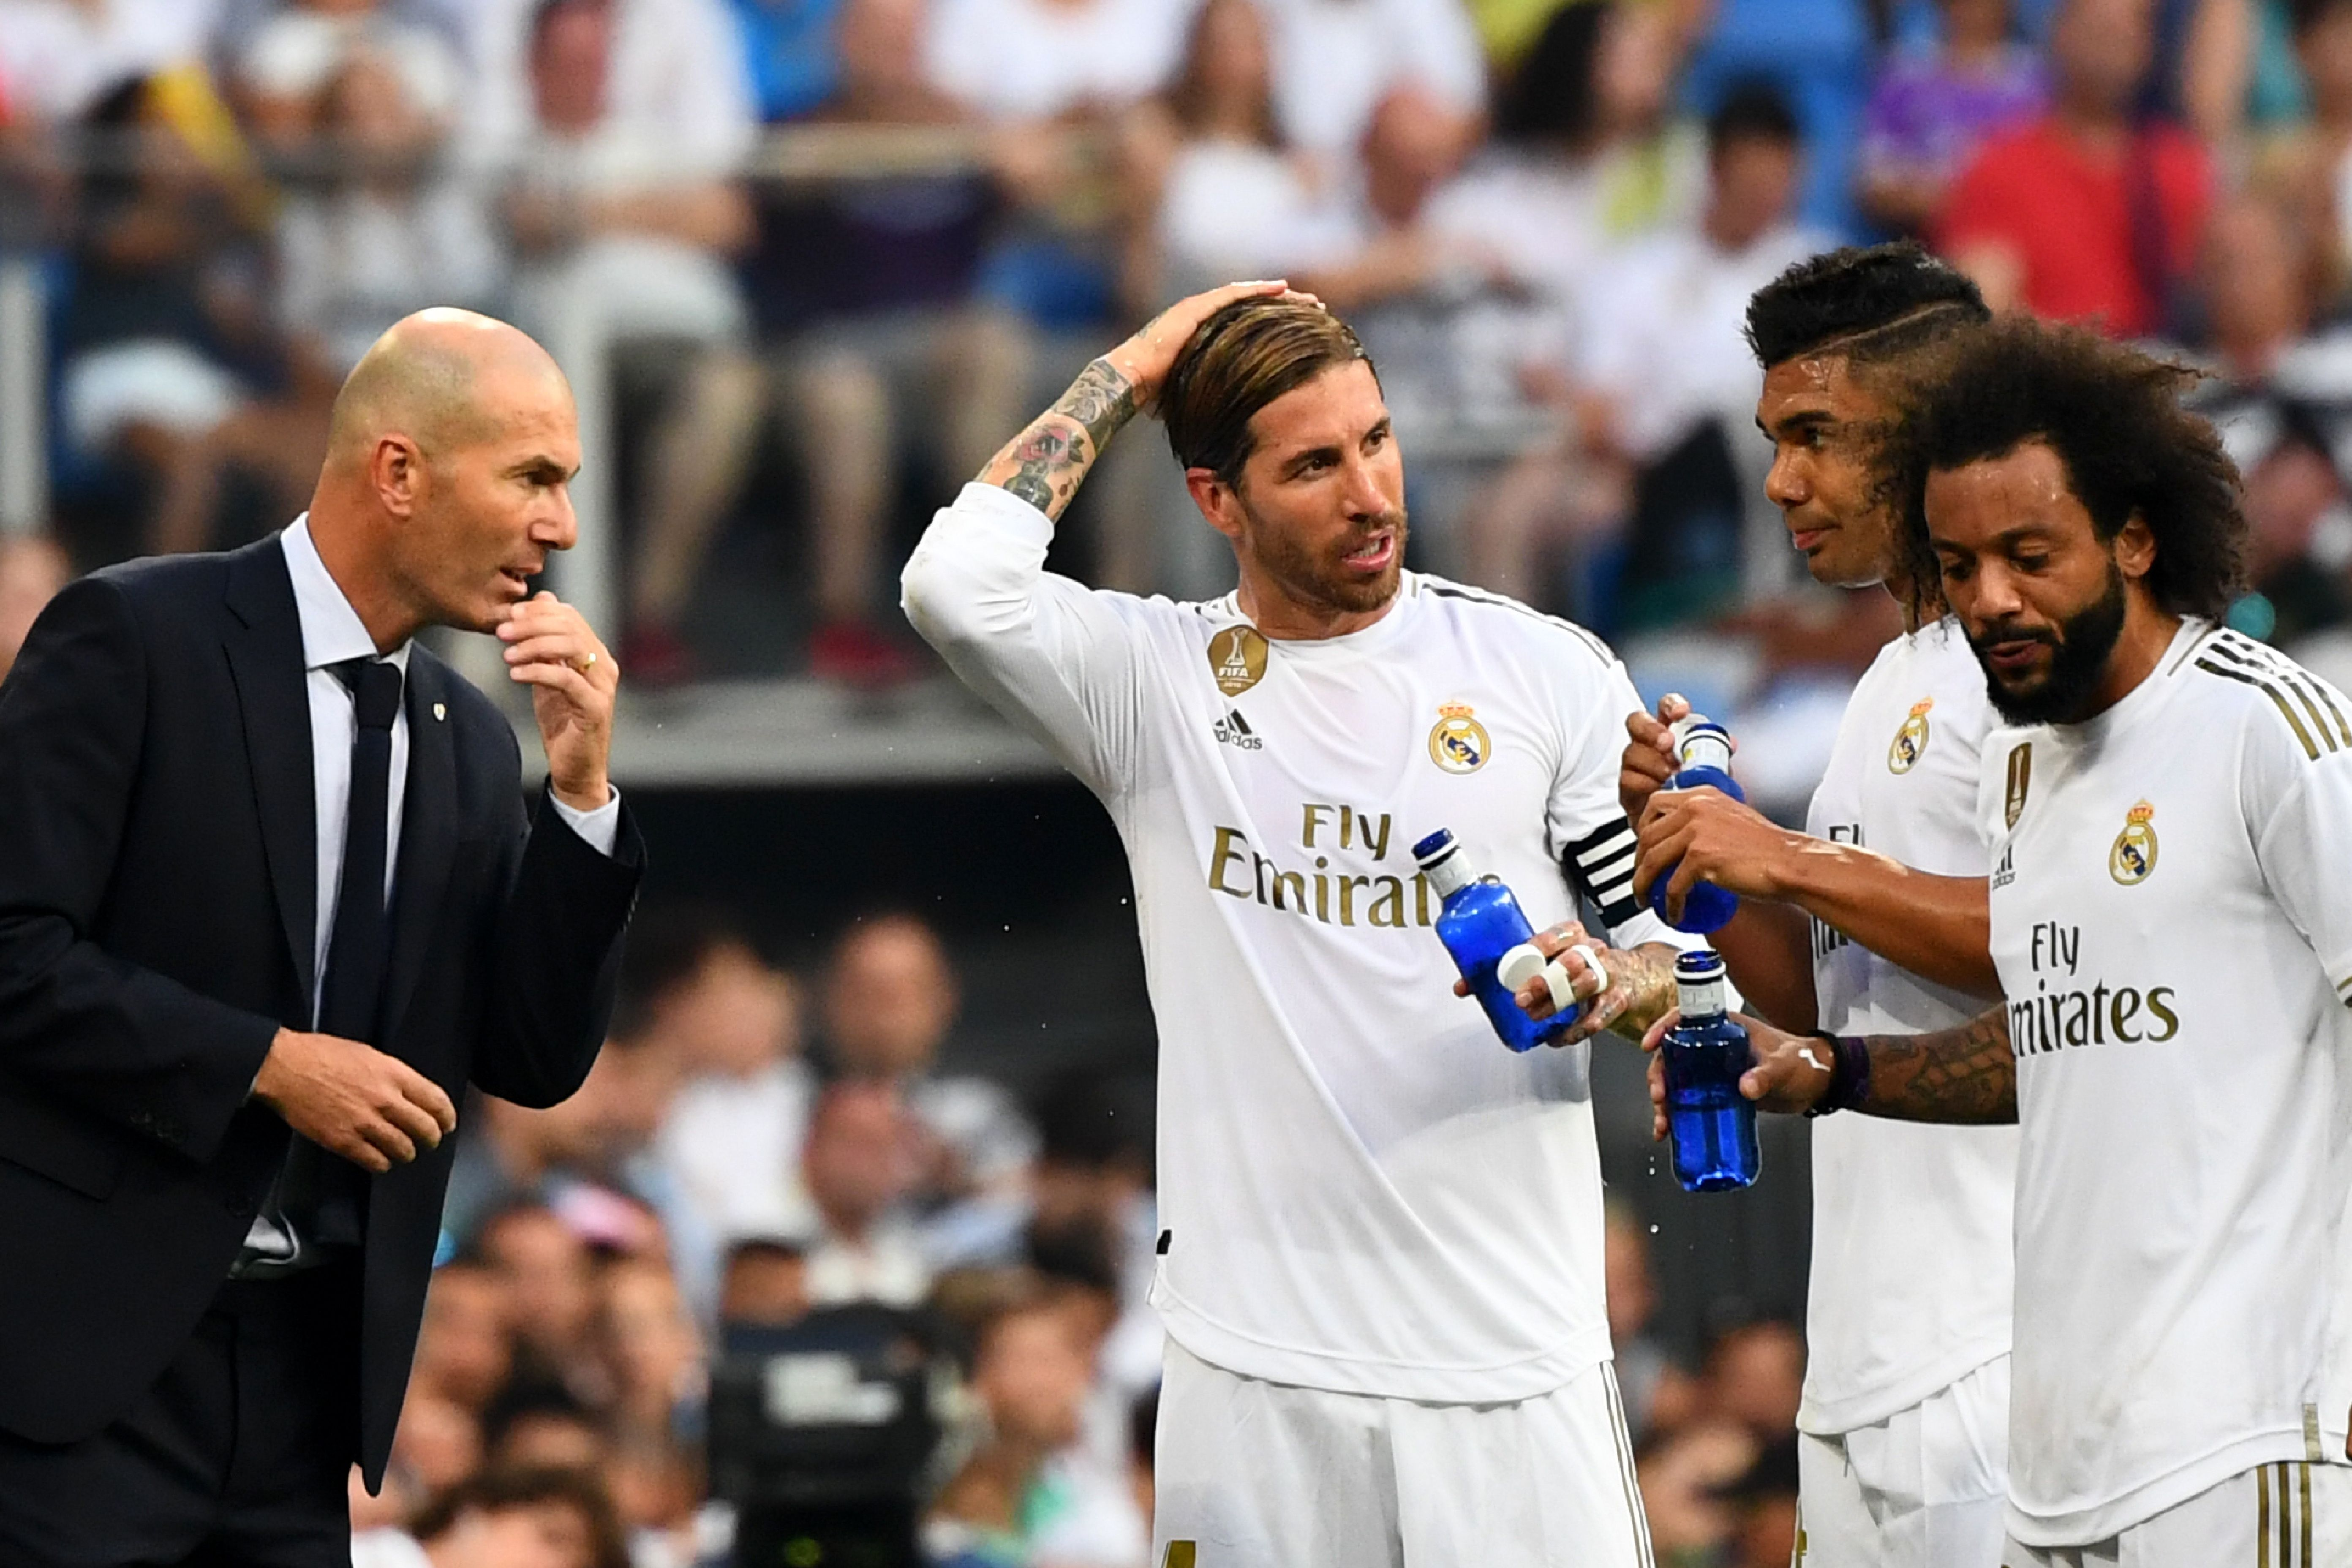 No Ramos but Casemiro is back for Real Madrid (Photo by Gabriel Bouys/AFP/Getty Images)